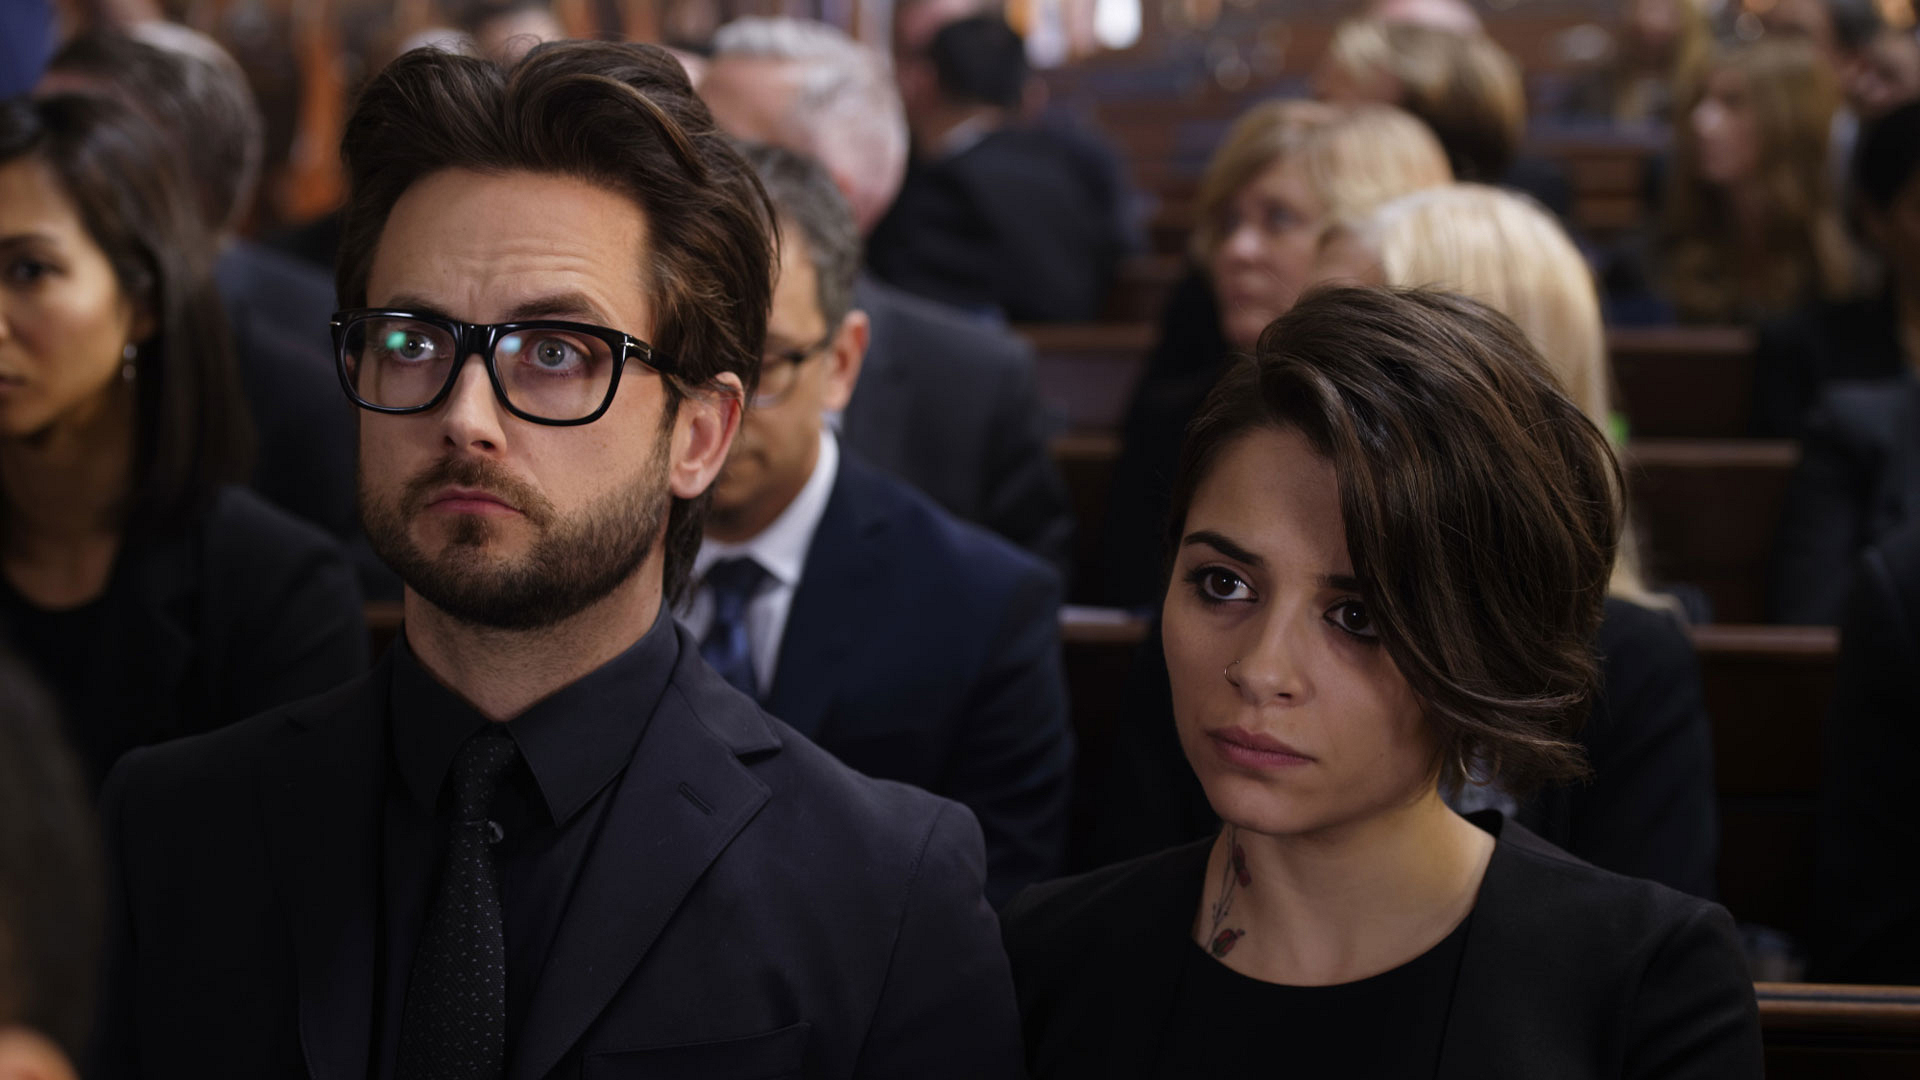 Cam and Sophie attend the funeral together.